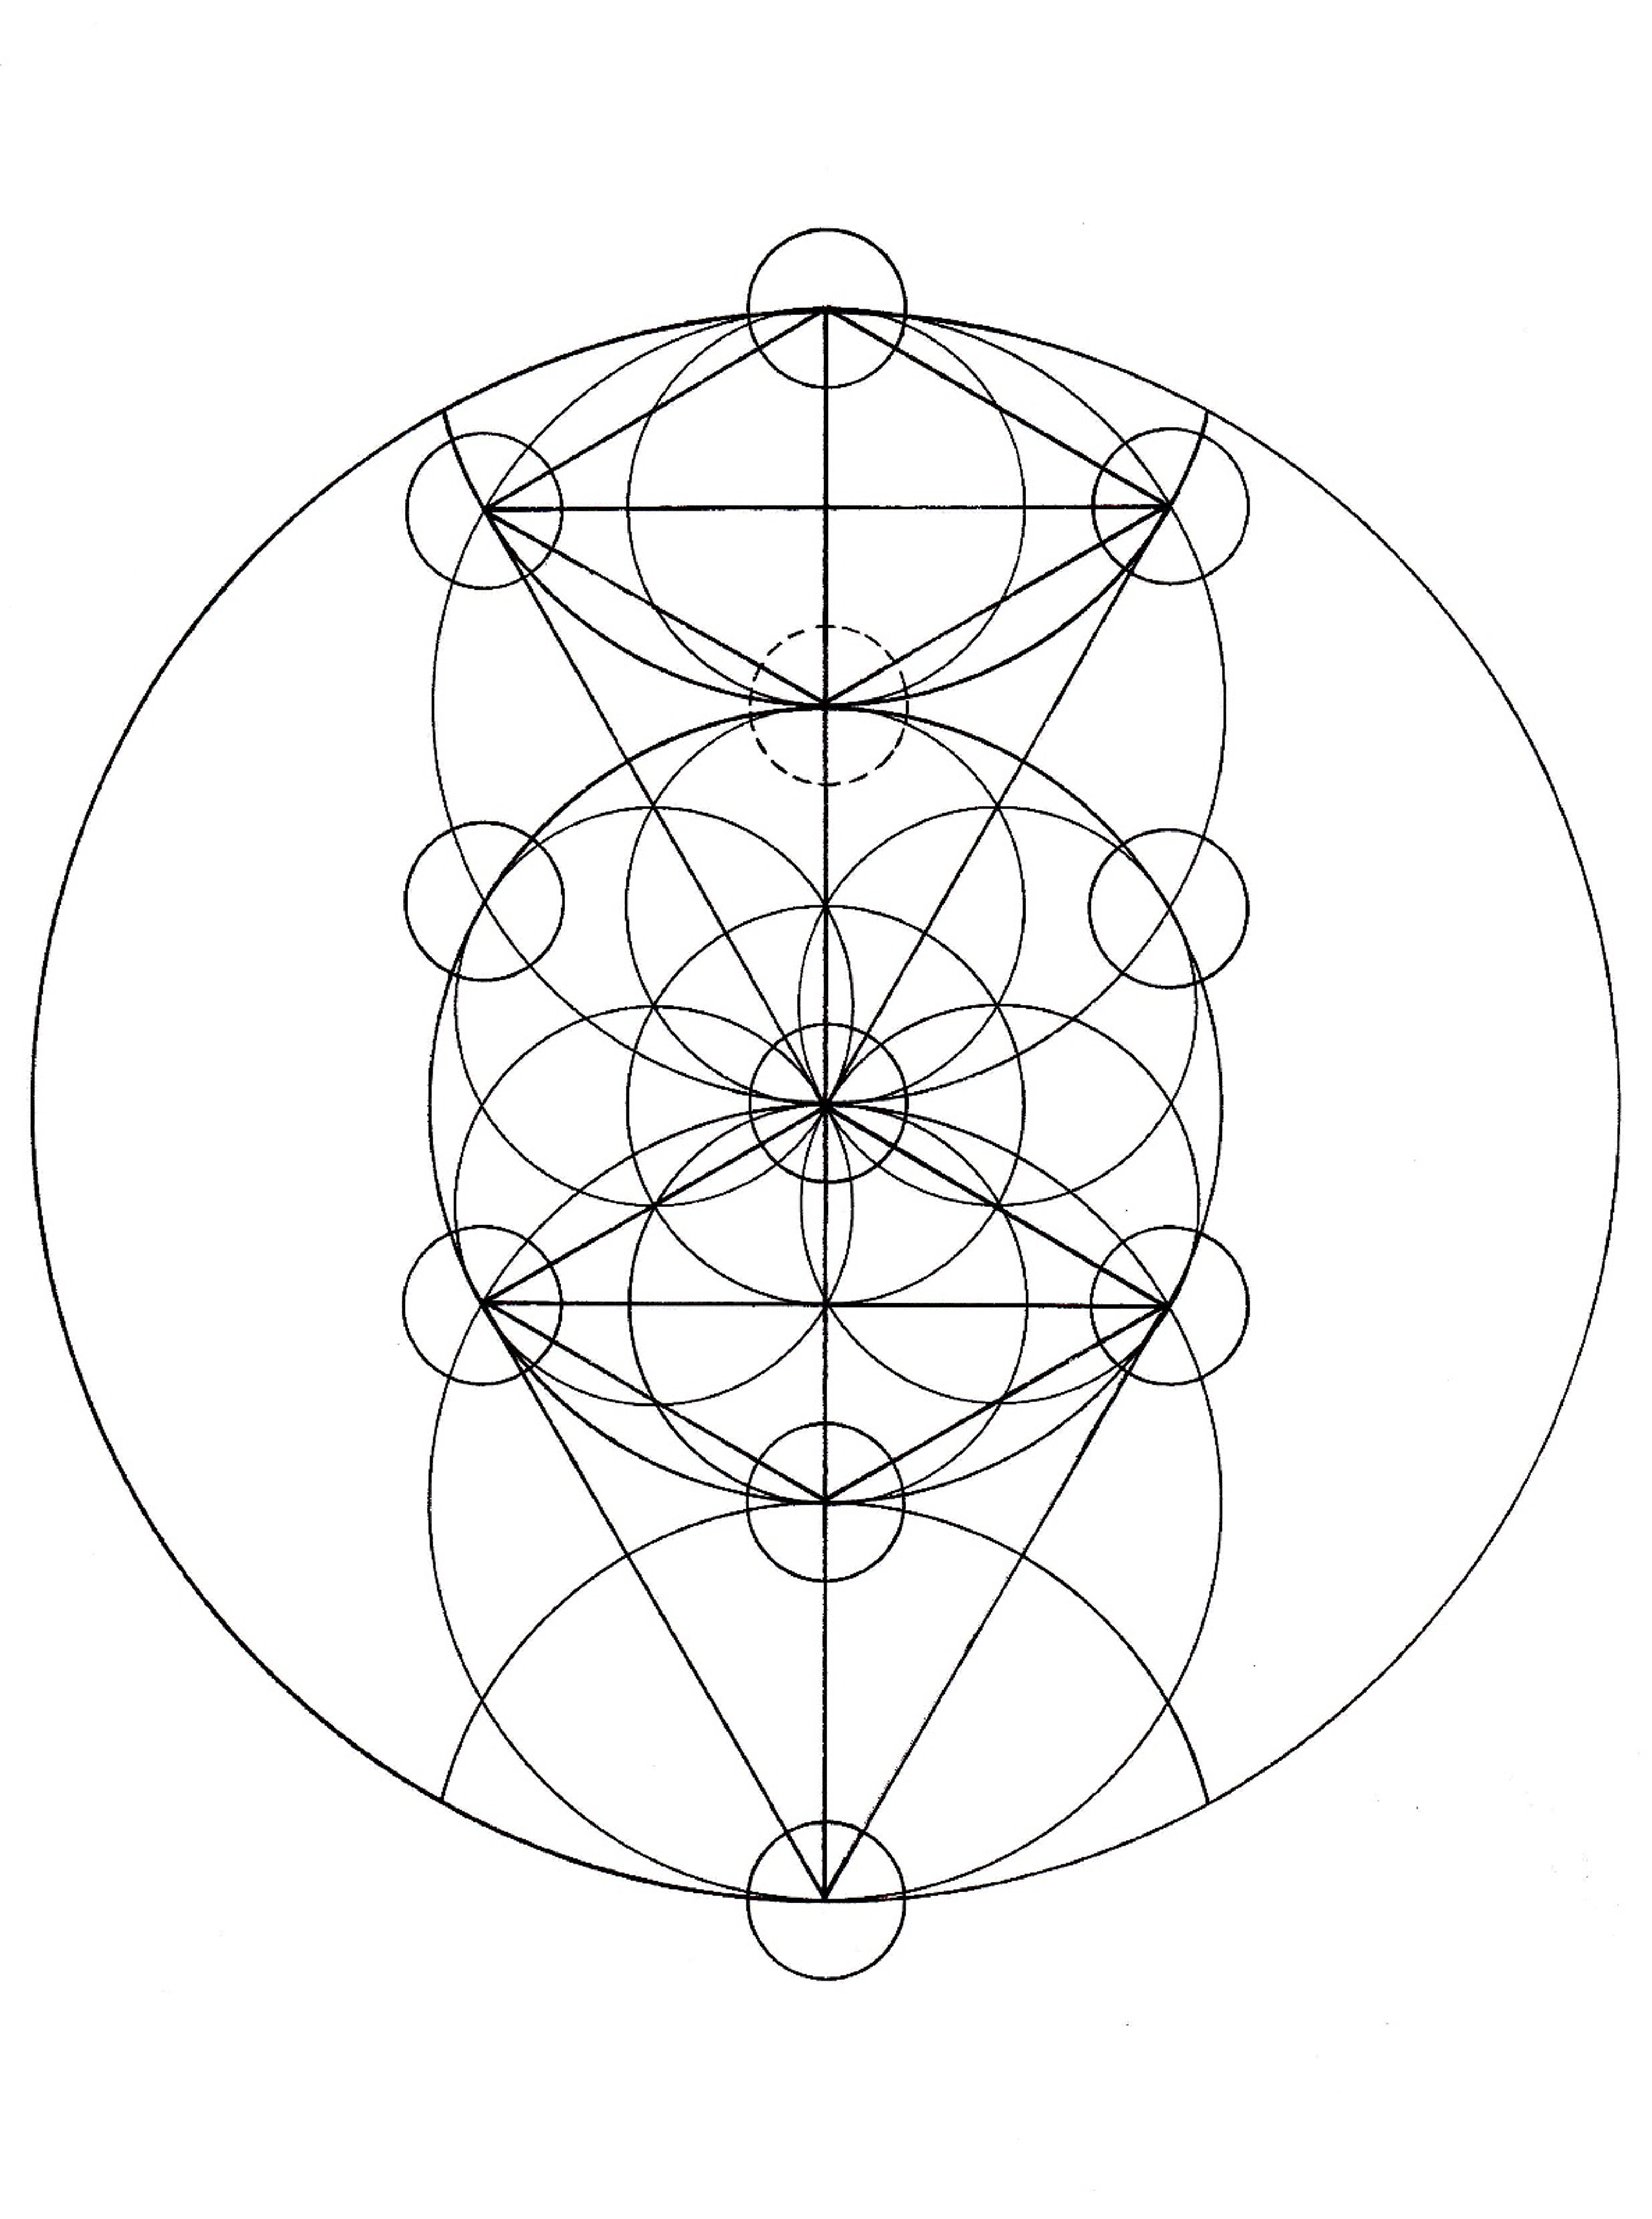 Flower Of Life Patterns Of Creation